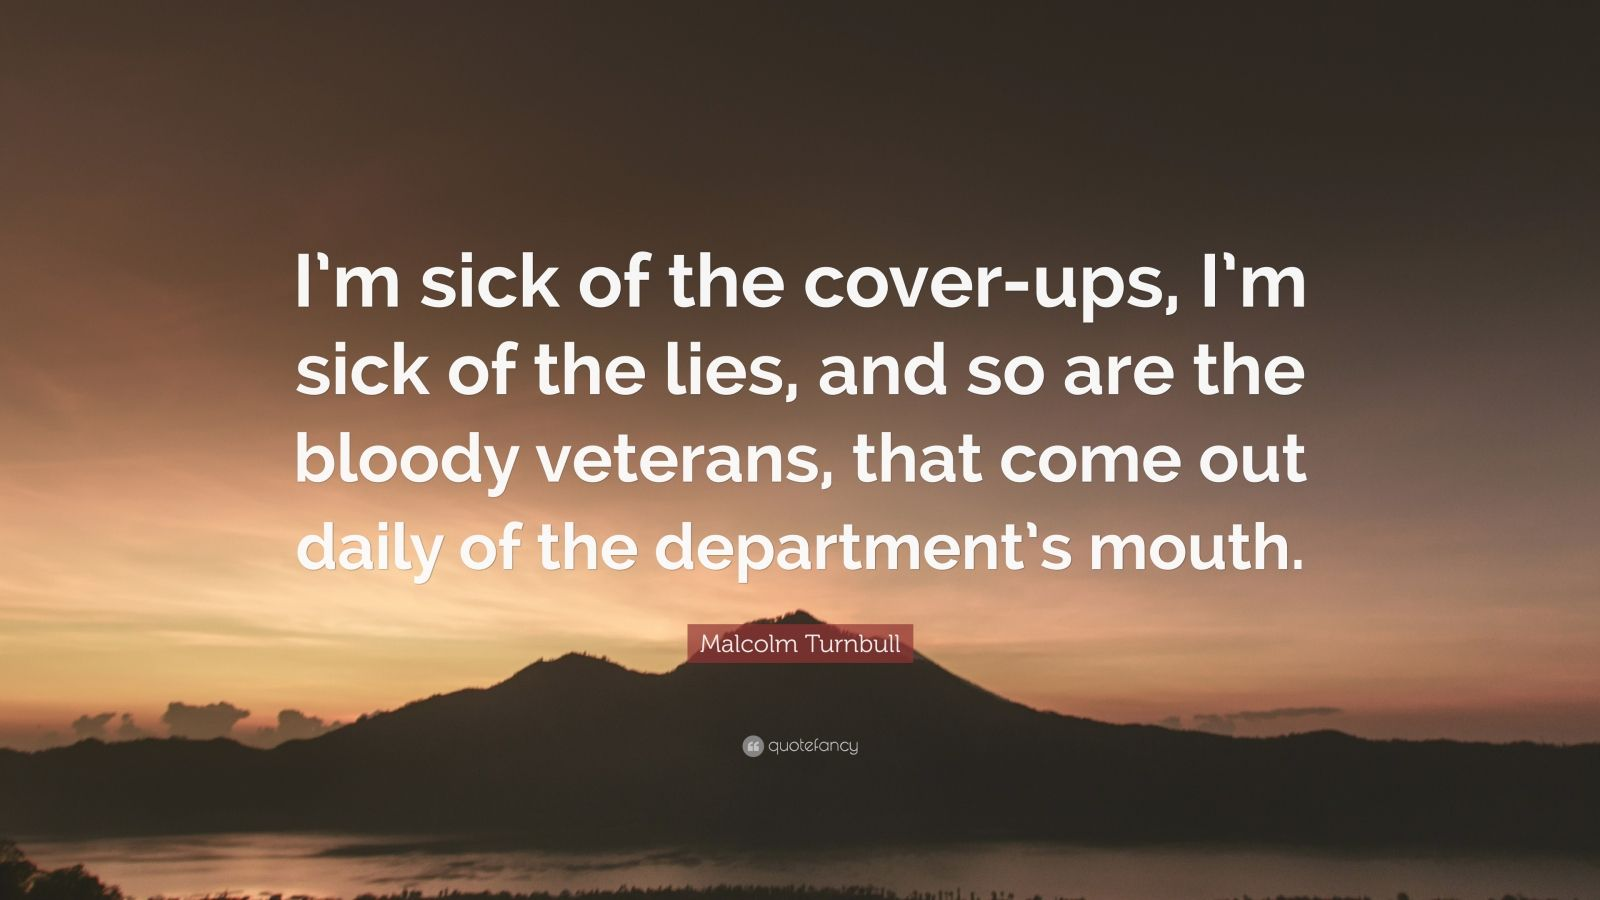 "Malcolm Turnbull Quote: ""I'm sick of the cover-ups, I'm sick of the lies, and so are the bloody veterans, that come out daily of the department's mouth."""